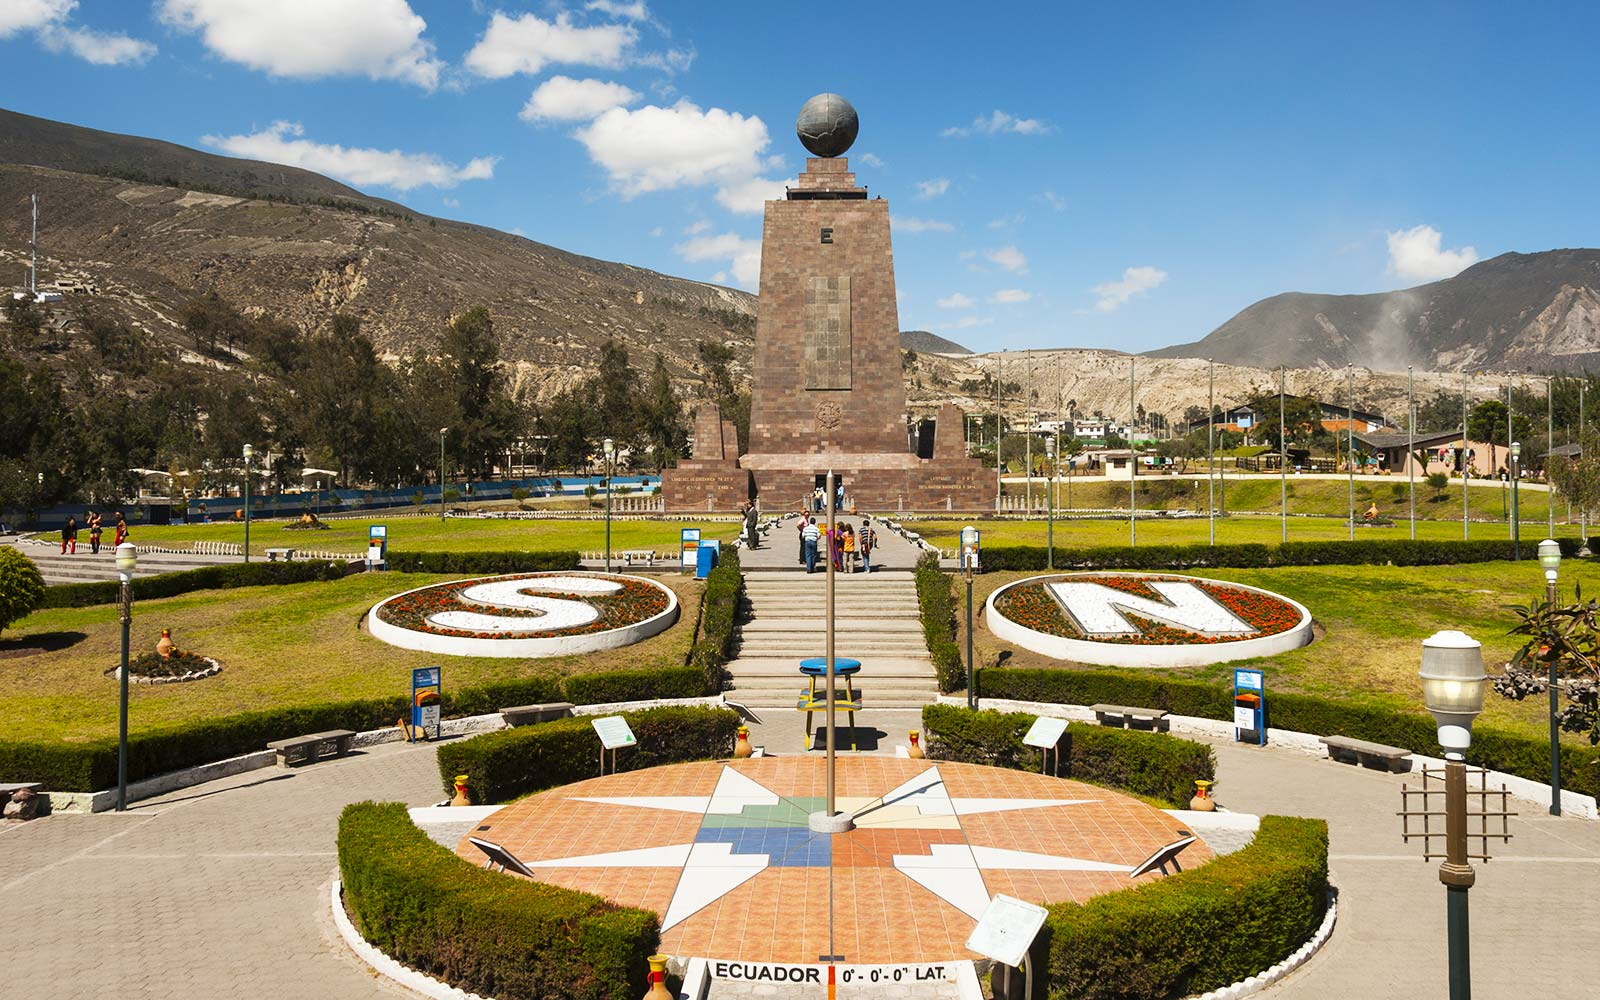 Tourists Are Visiting Equator Monuments That Aren't Actually on the Equator